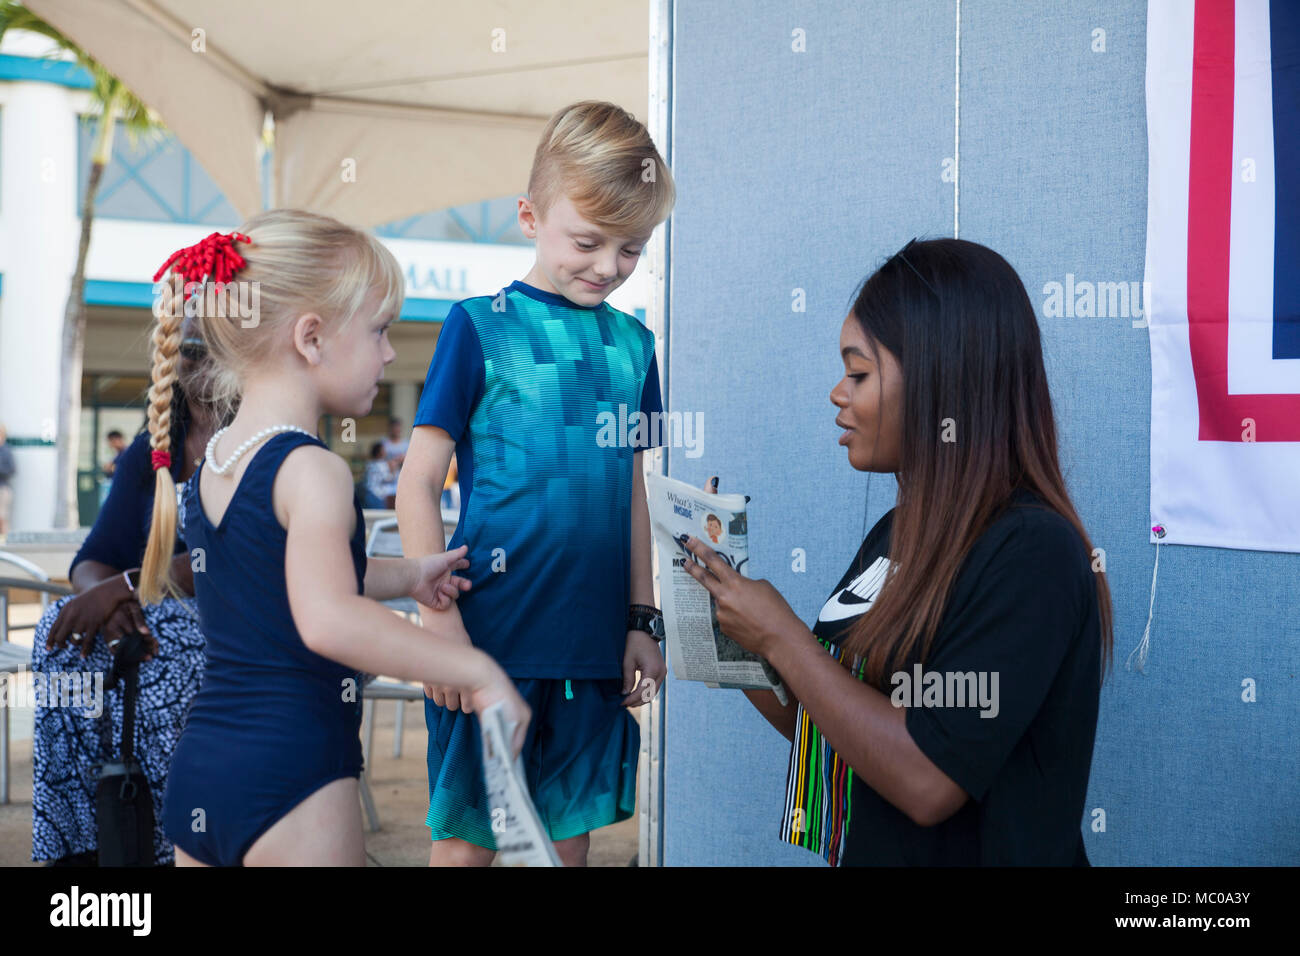 Gold medalist gabby douglas stock photos gold medalist gabby gabrielle gabby douglas signs autographs during a united services organization uso meet m4hsunfo